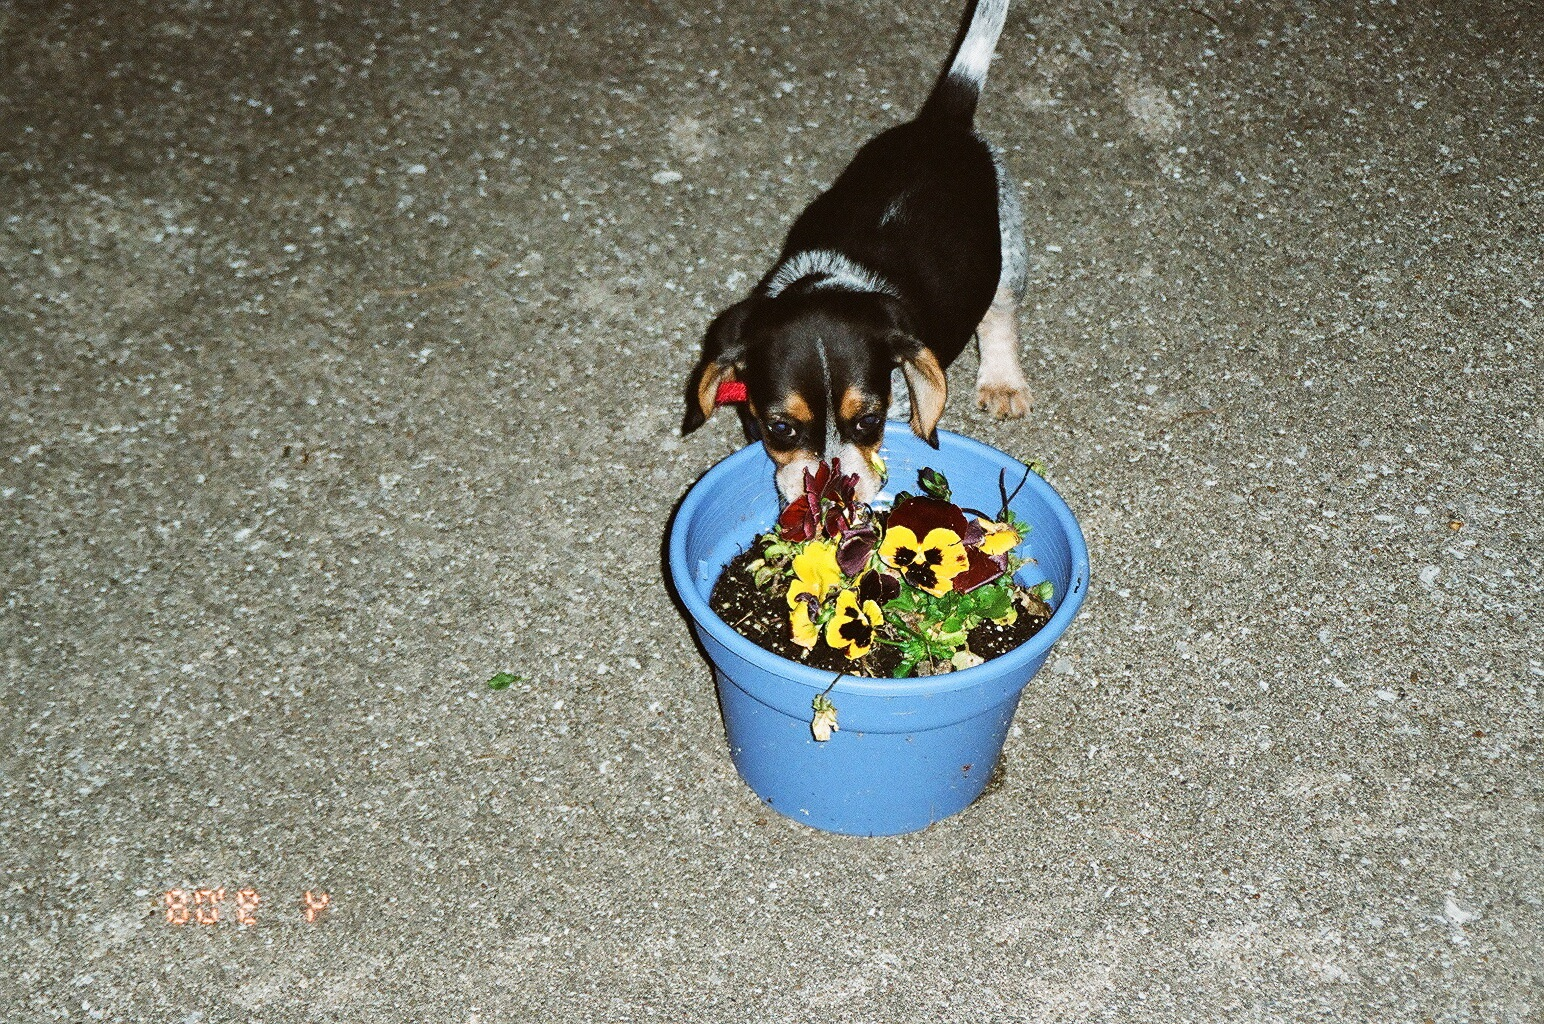 Jim and flowers